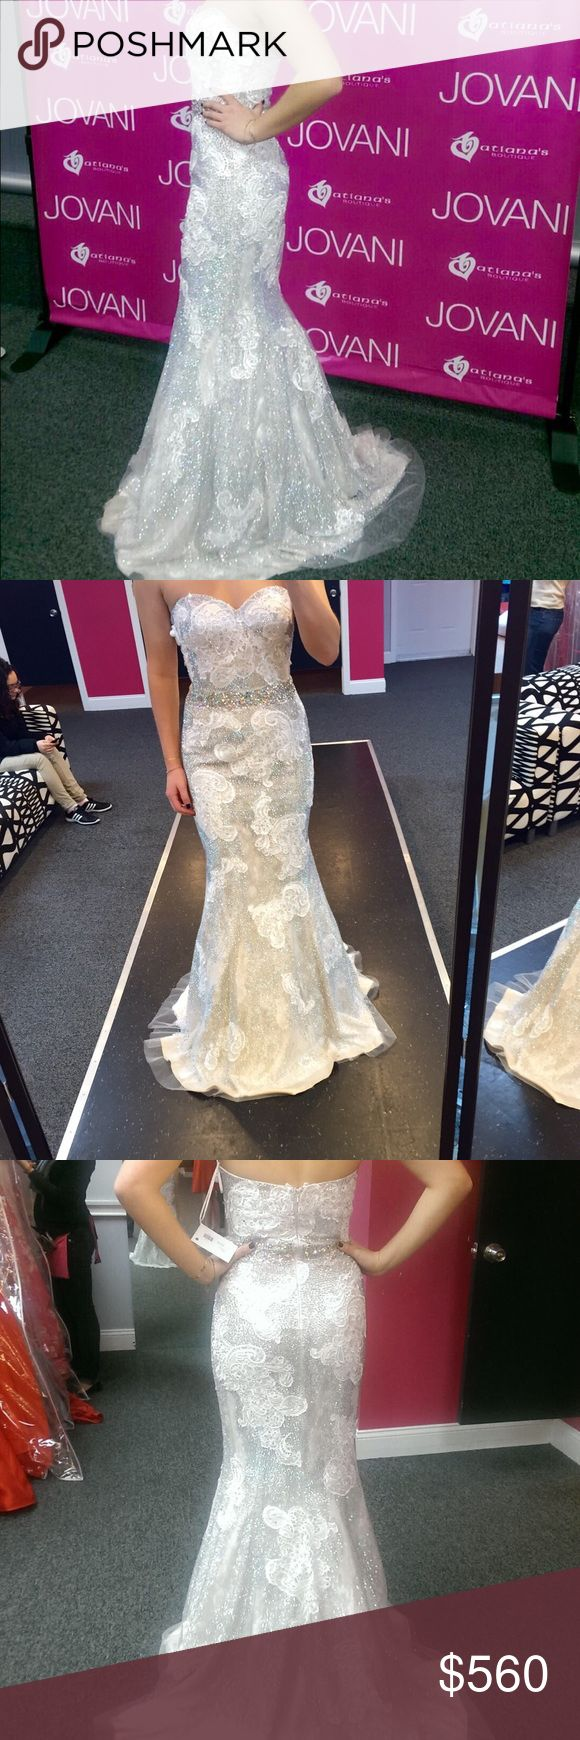 Couture Jovani Wedding/Prom Dress Honestly I don't know the style number of this dress. I got it 3 years ago for my junior prom and it's a REALLY rare dress. They didn't make many of them. It's a size 2 and a completely beaded dress with lace detailing. I'm 5'3 but wore 6-7 inch heels so fits up to 5'9 and 5'10. The dress has many layers..silk, Lace, beading. All in all I spent over $1000 on this dress. It has B cups inserted but they can easily be removed. Jovani Dresses Wedding